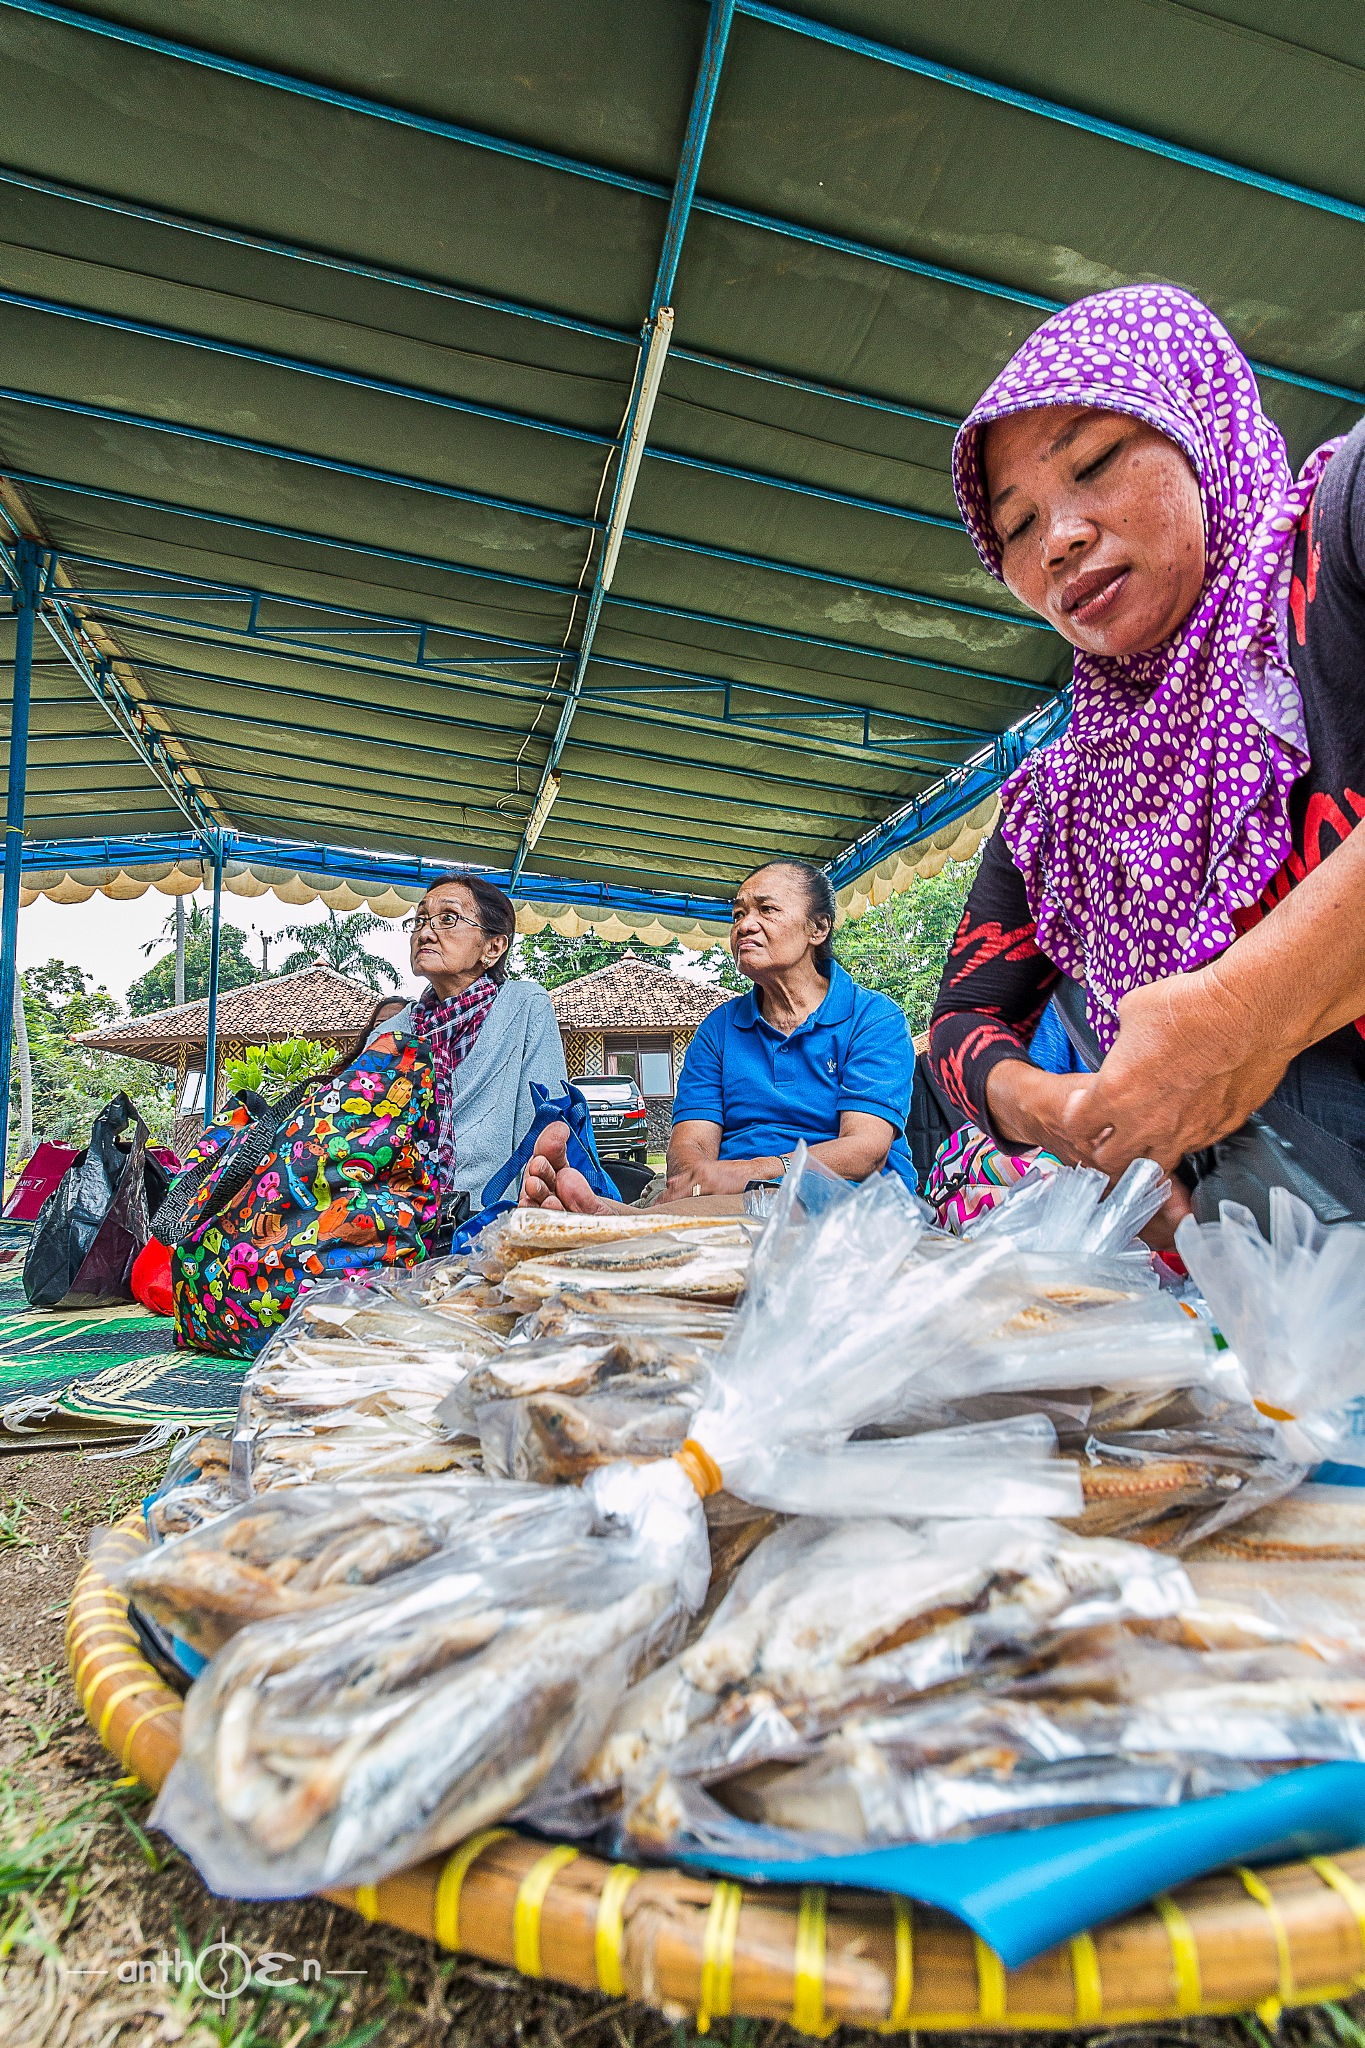 Sellers anchovies that are characteristic souvenirs of Anyer Beach by Anthoen Luciferano Karnanta